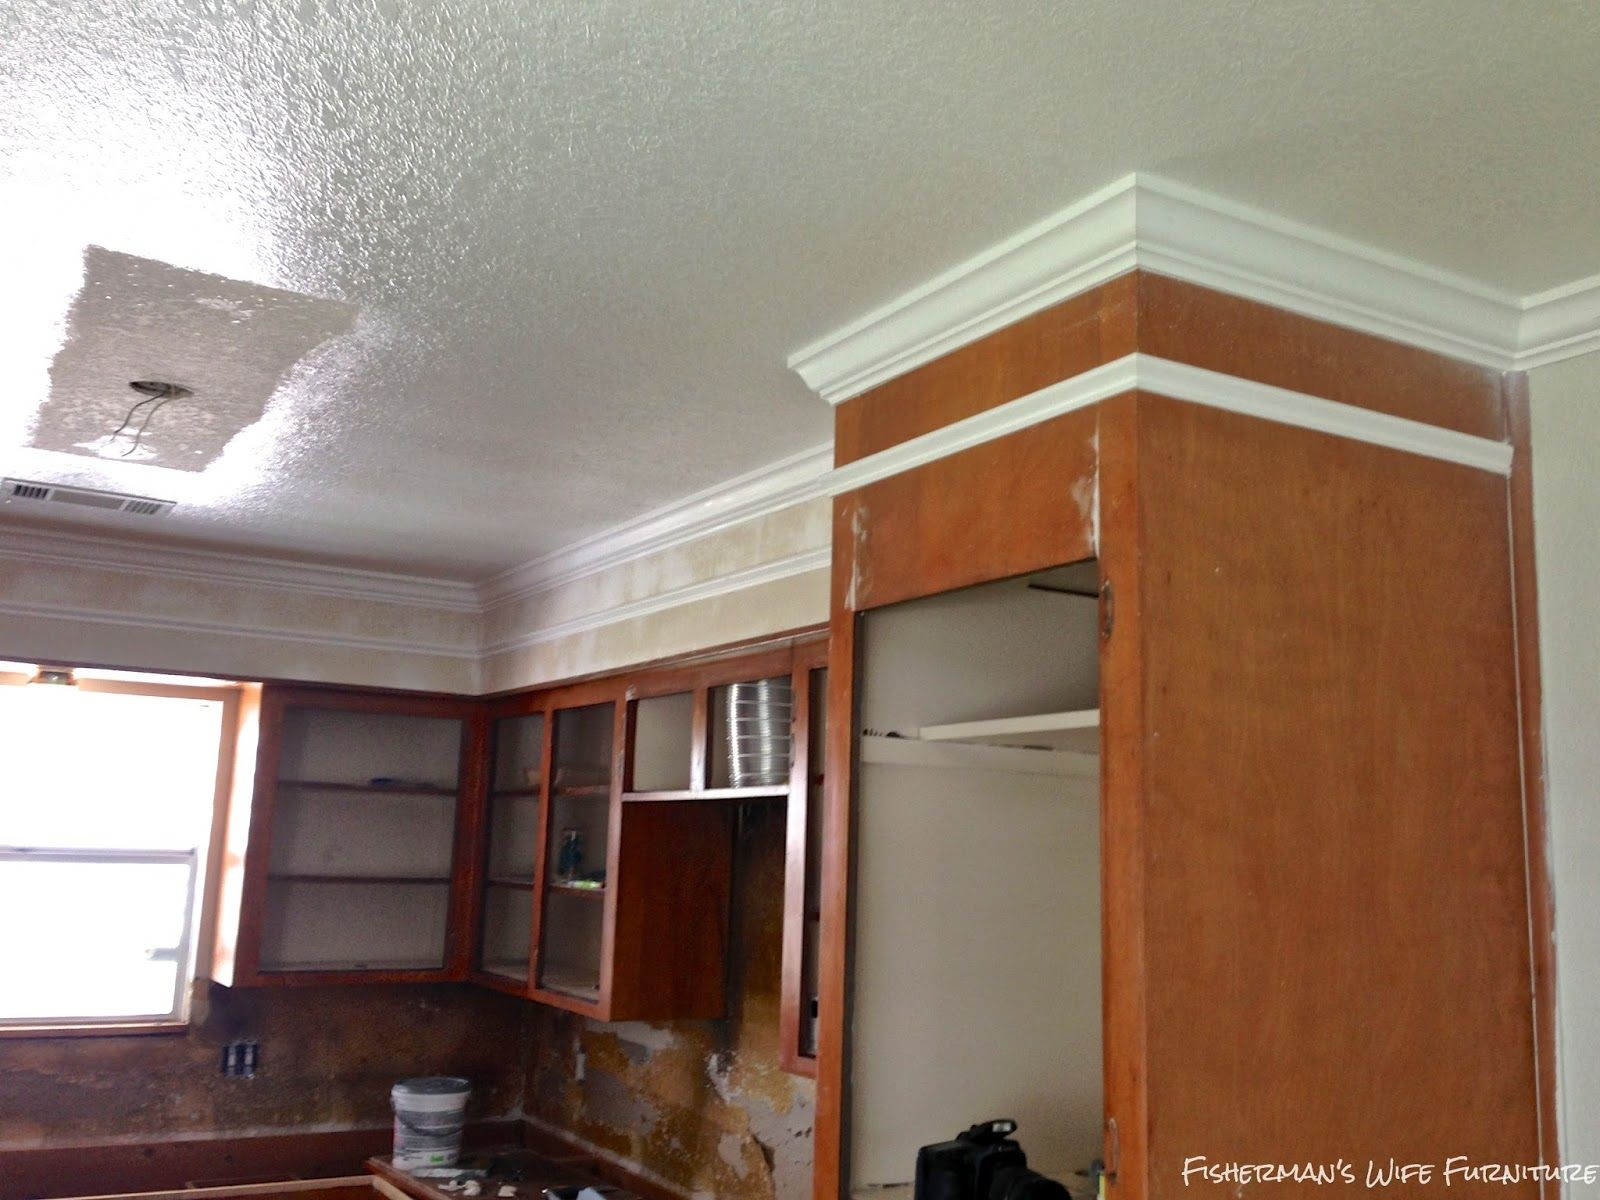 Covering Fur Down The Space Above The Cabinets Kitchen Soffit Kitchen Cabinet Crown Molding Crown Moulding Kitchen Cabinets